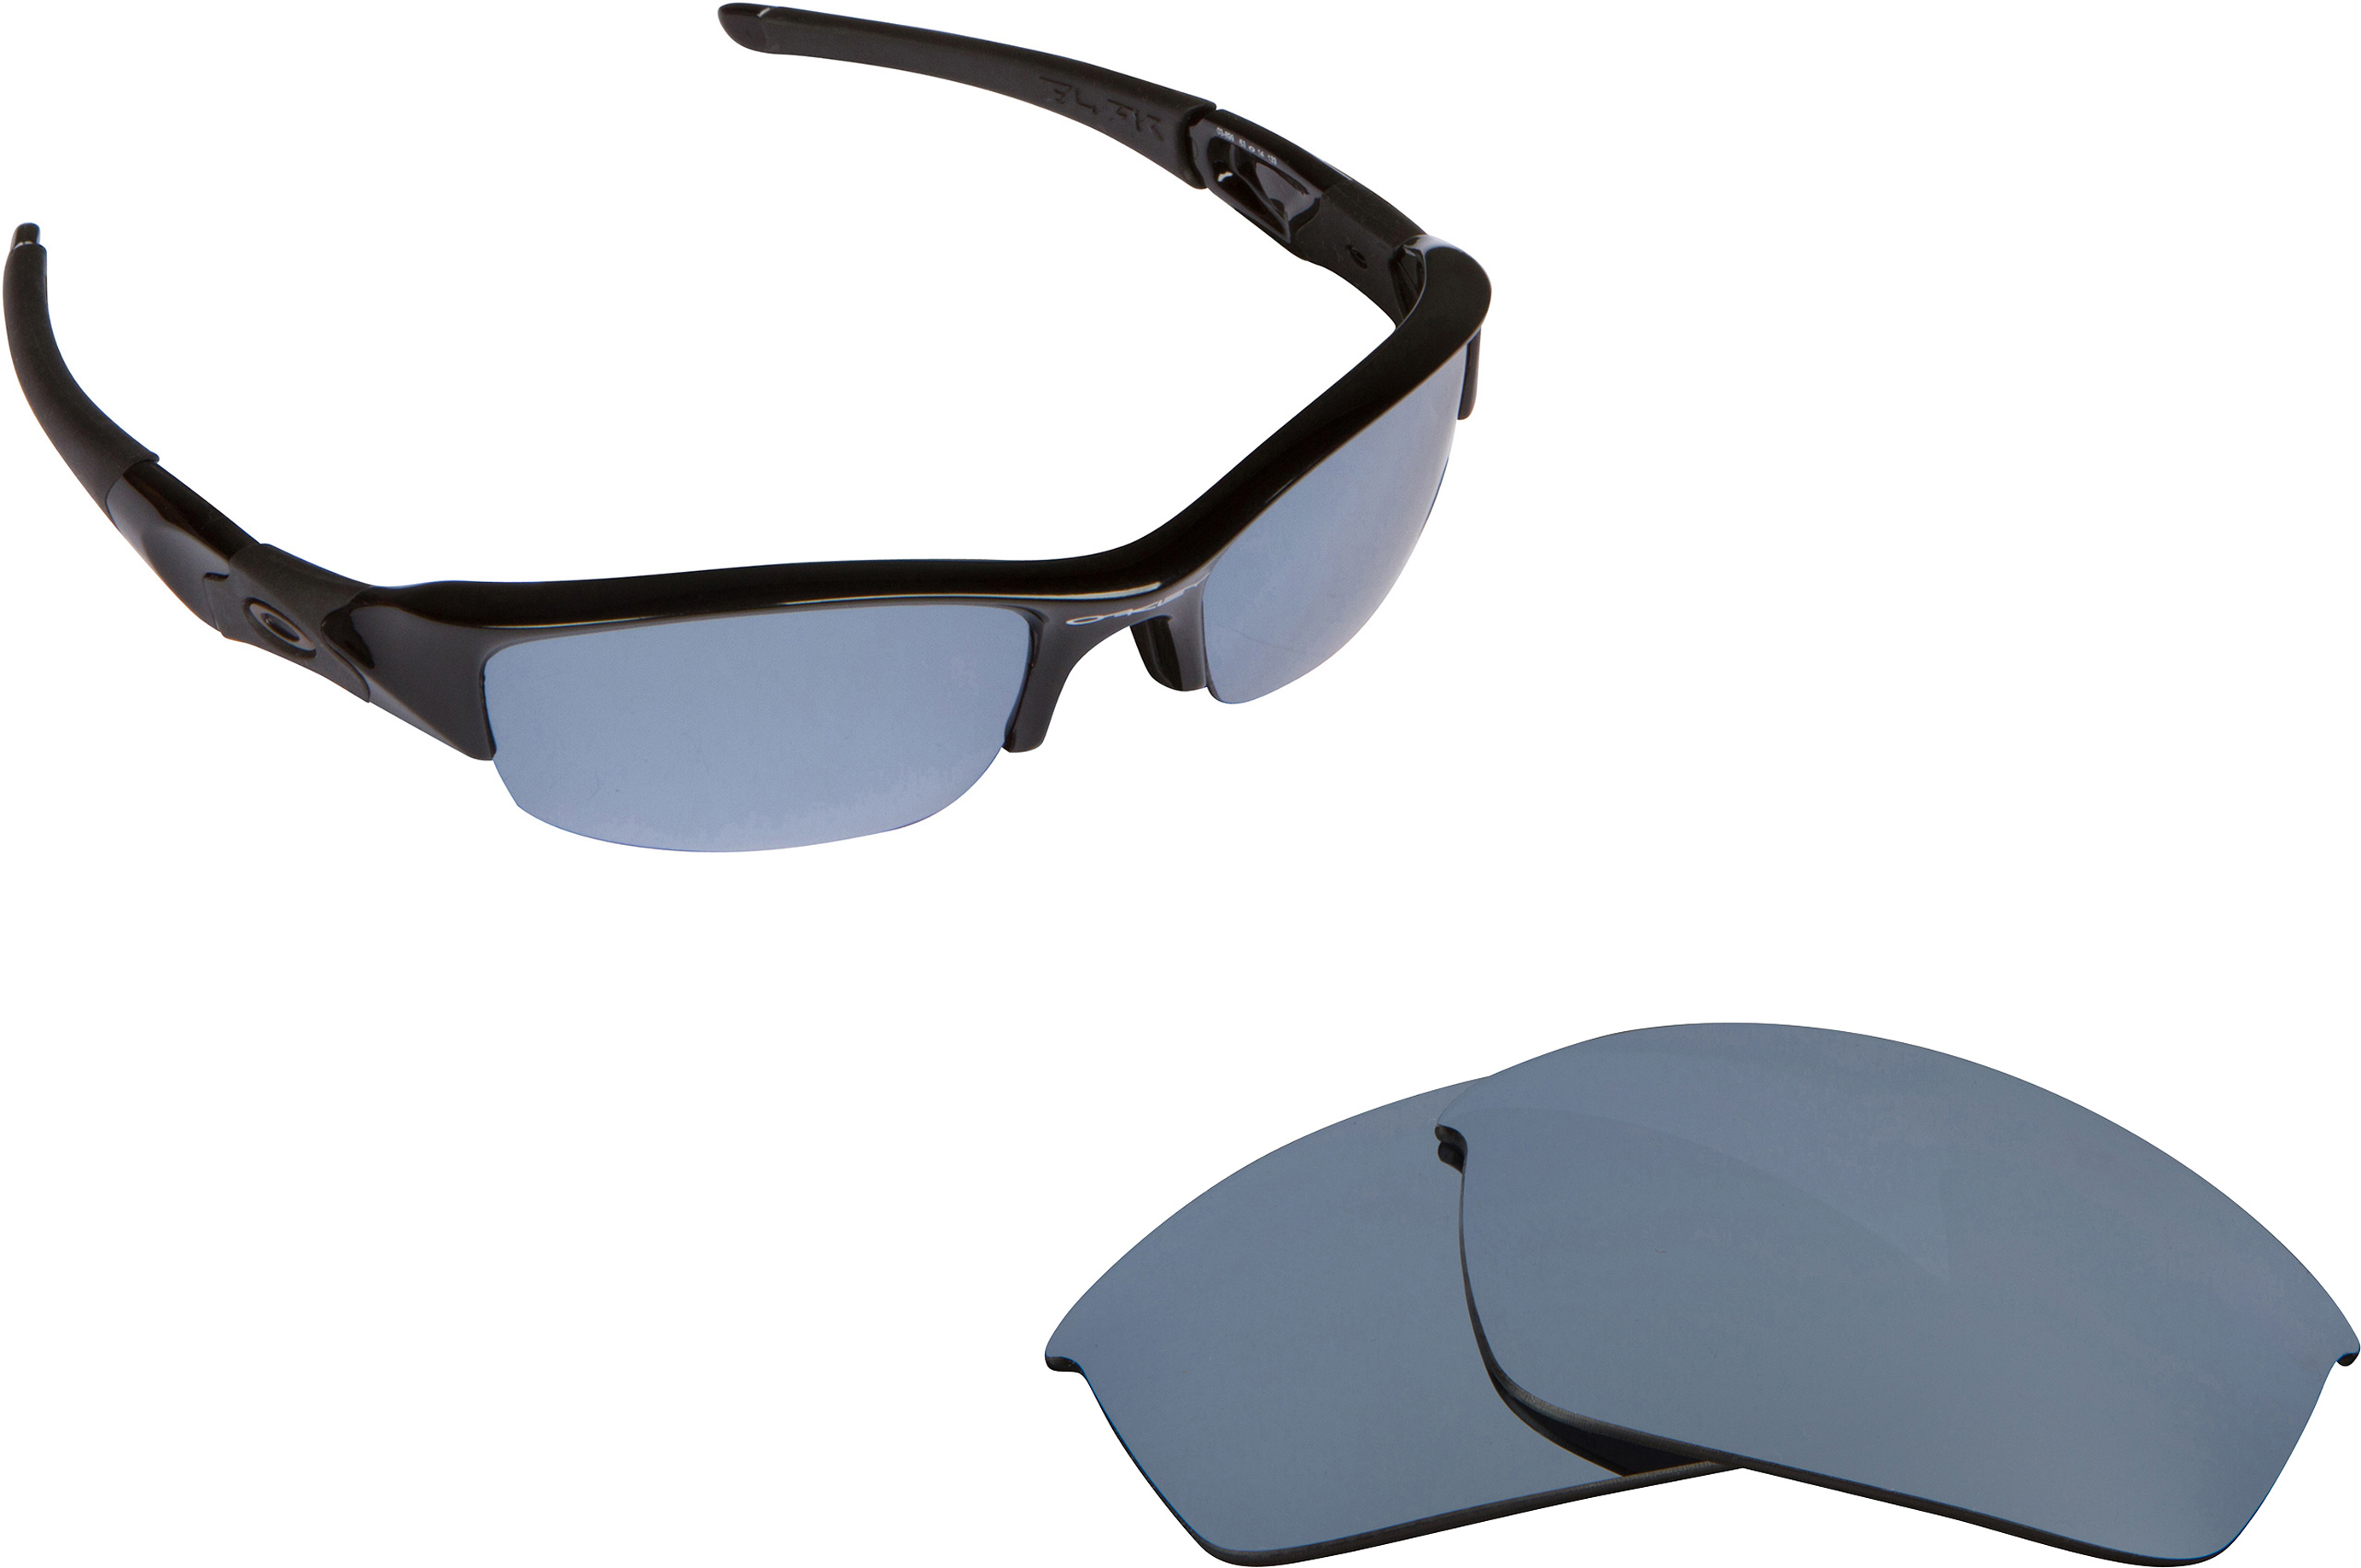 6a343faf76d FLAK JACKET Replacement Lenses by SEEK OPTICS to fit OAKLEY ...